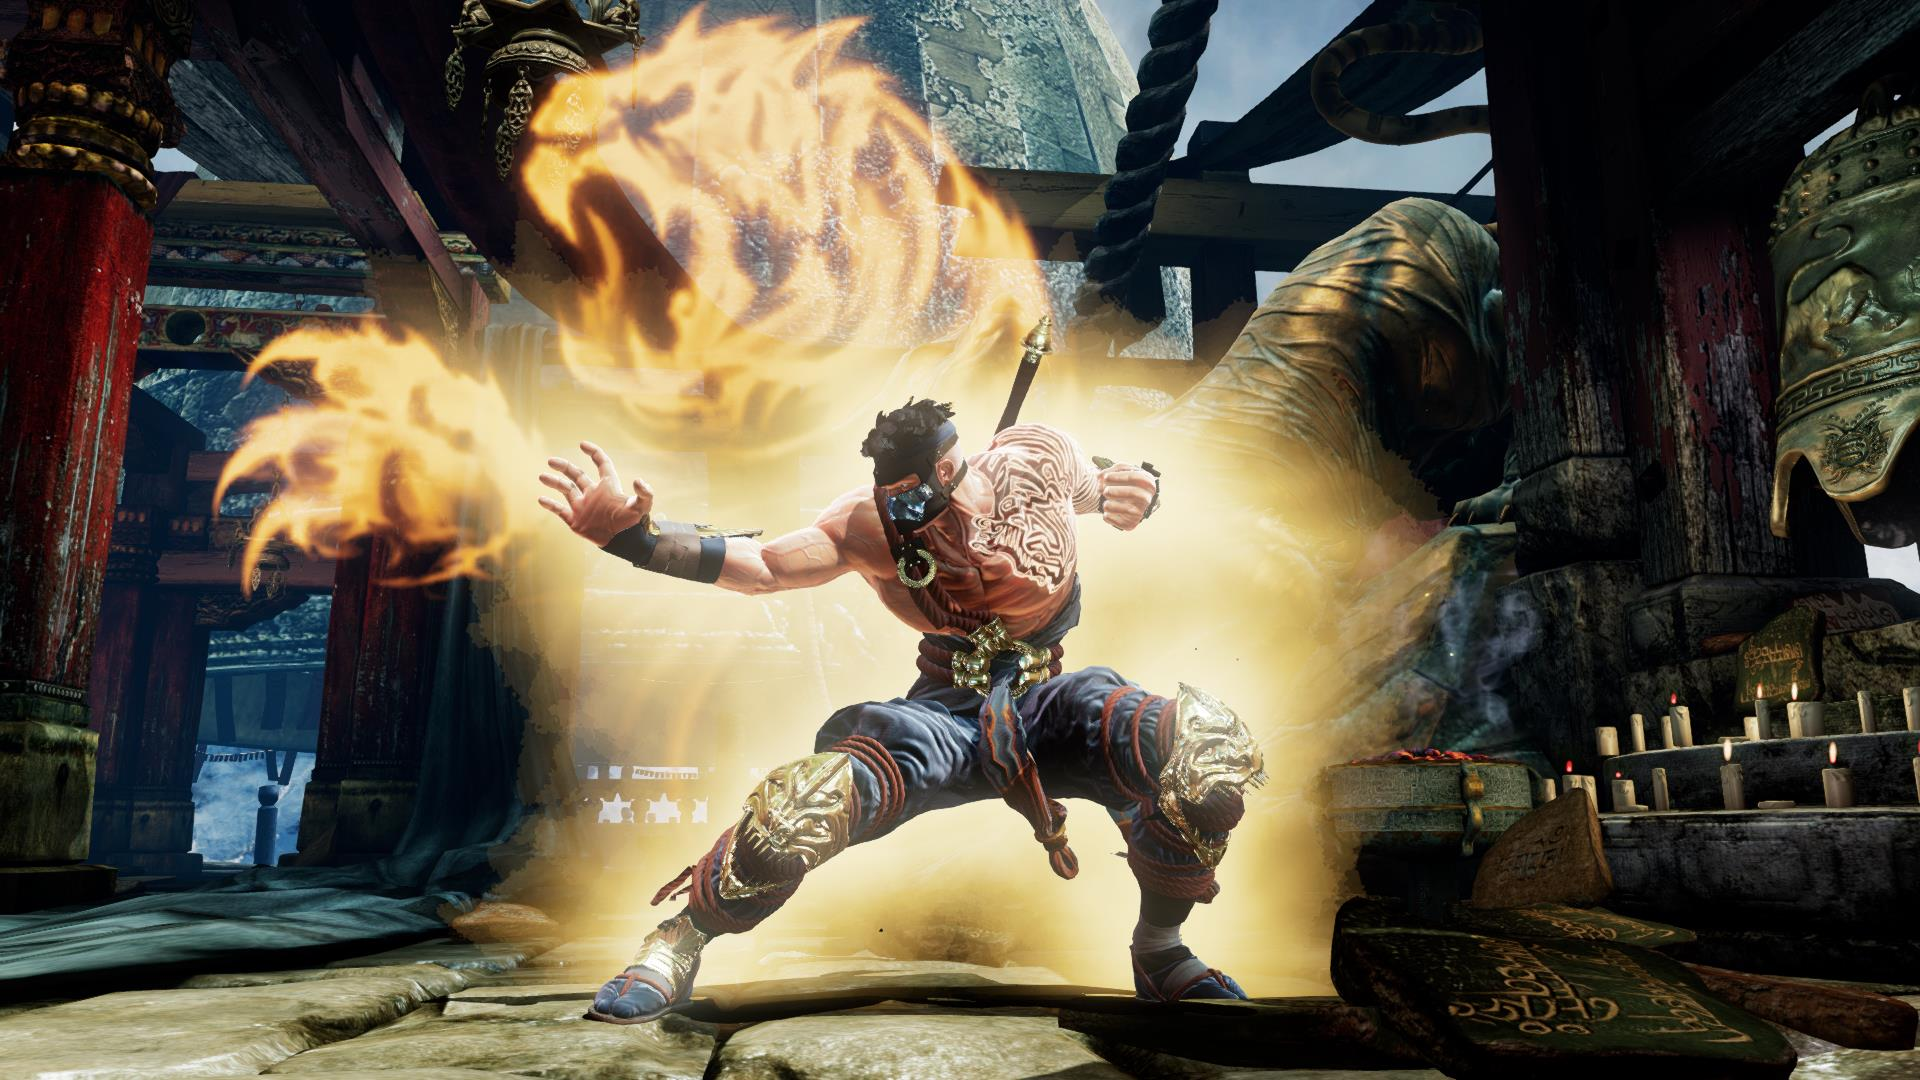 Tiger's Fury in Killer Instinct